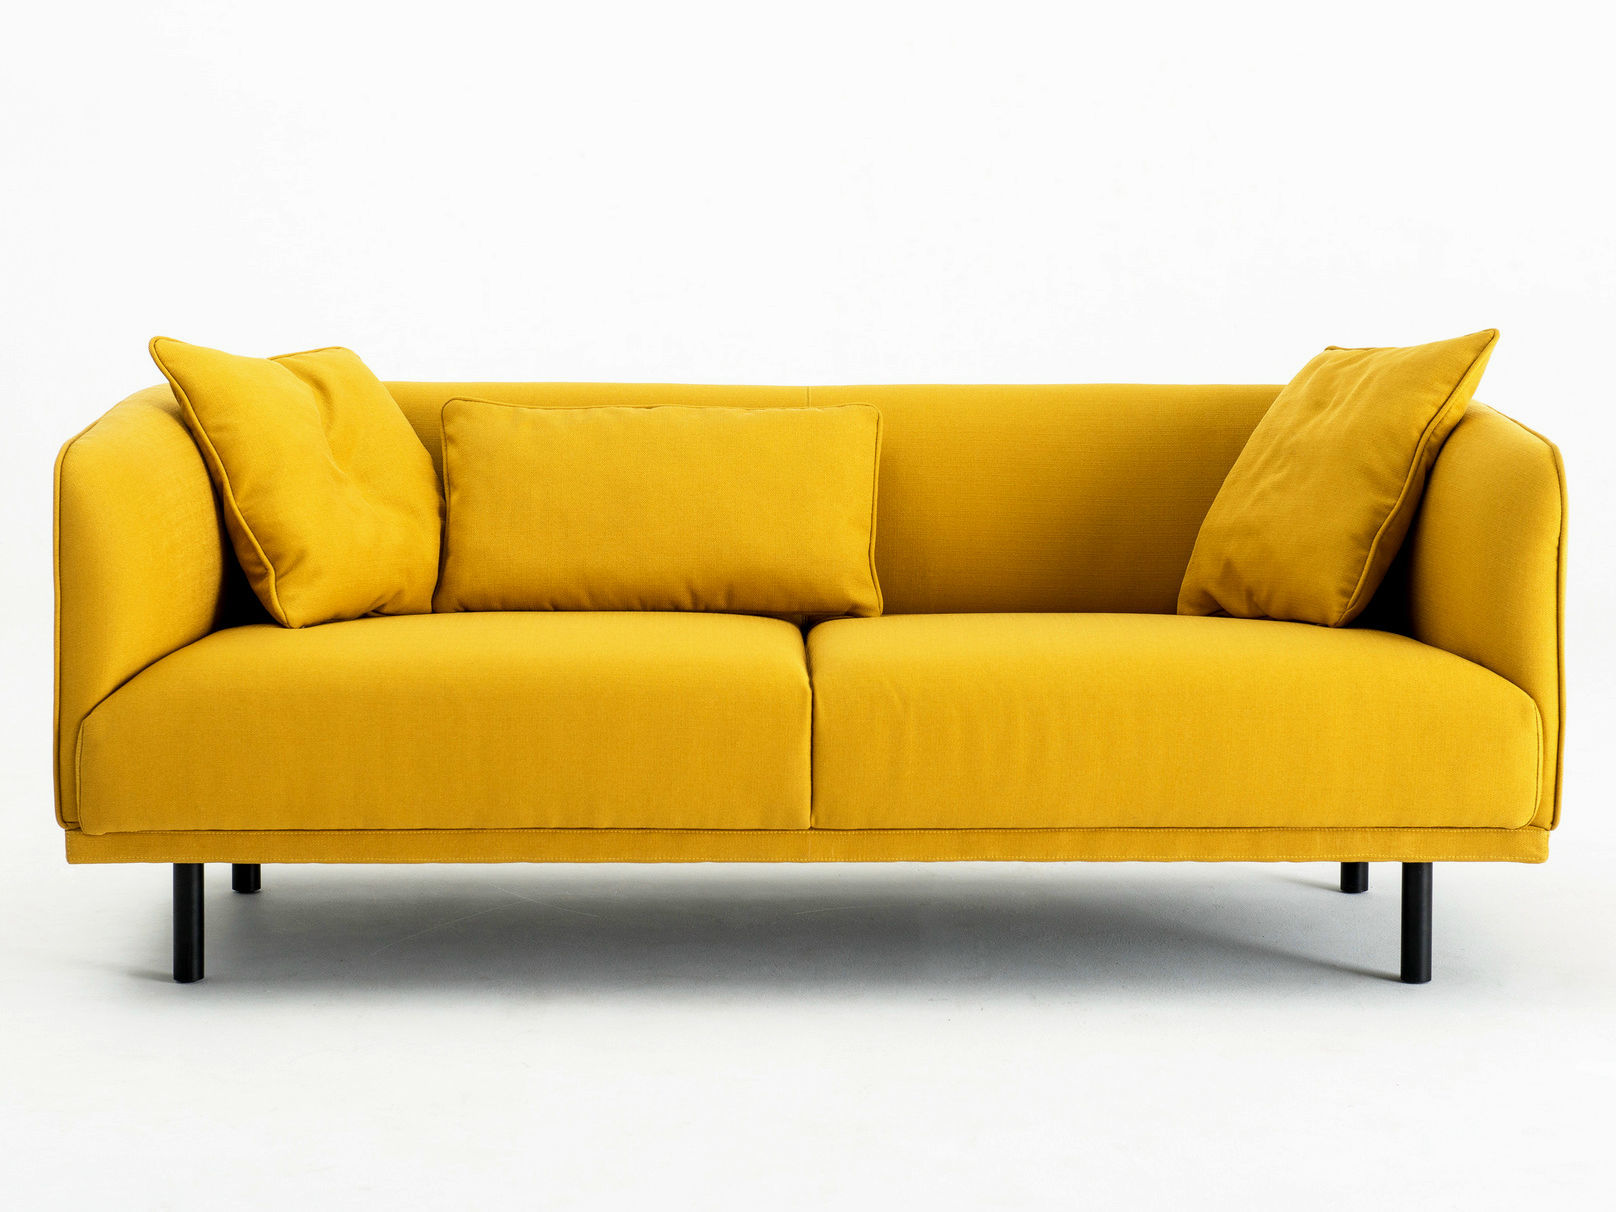 superb sofa mart furniture collection-Lovely sofa Mart Furniture Image